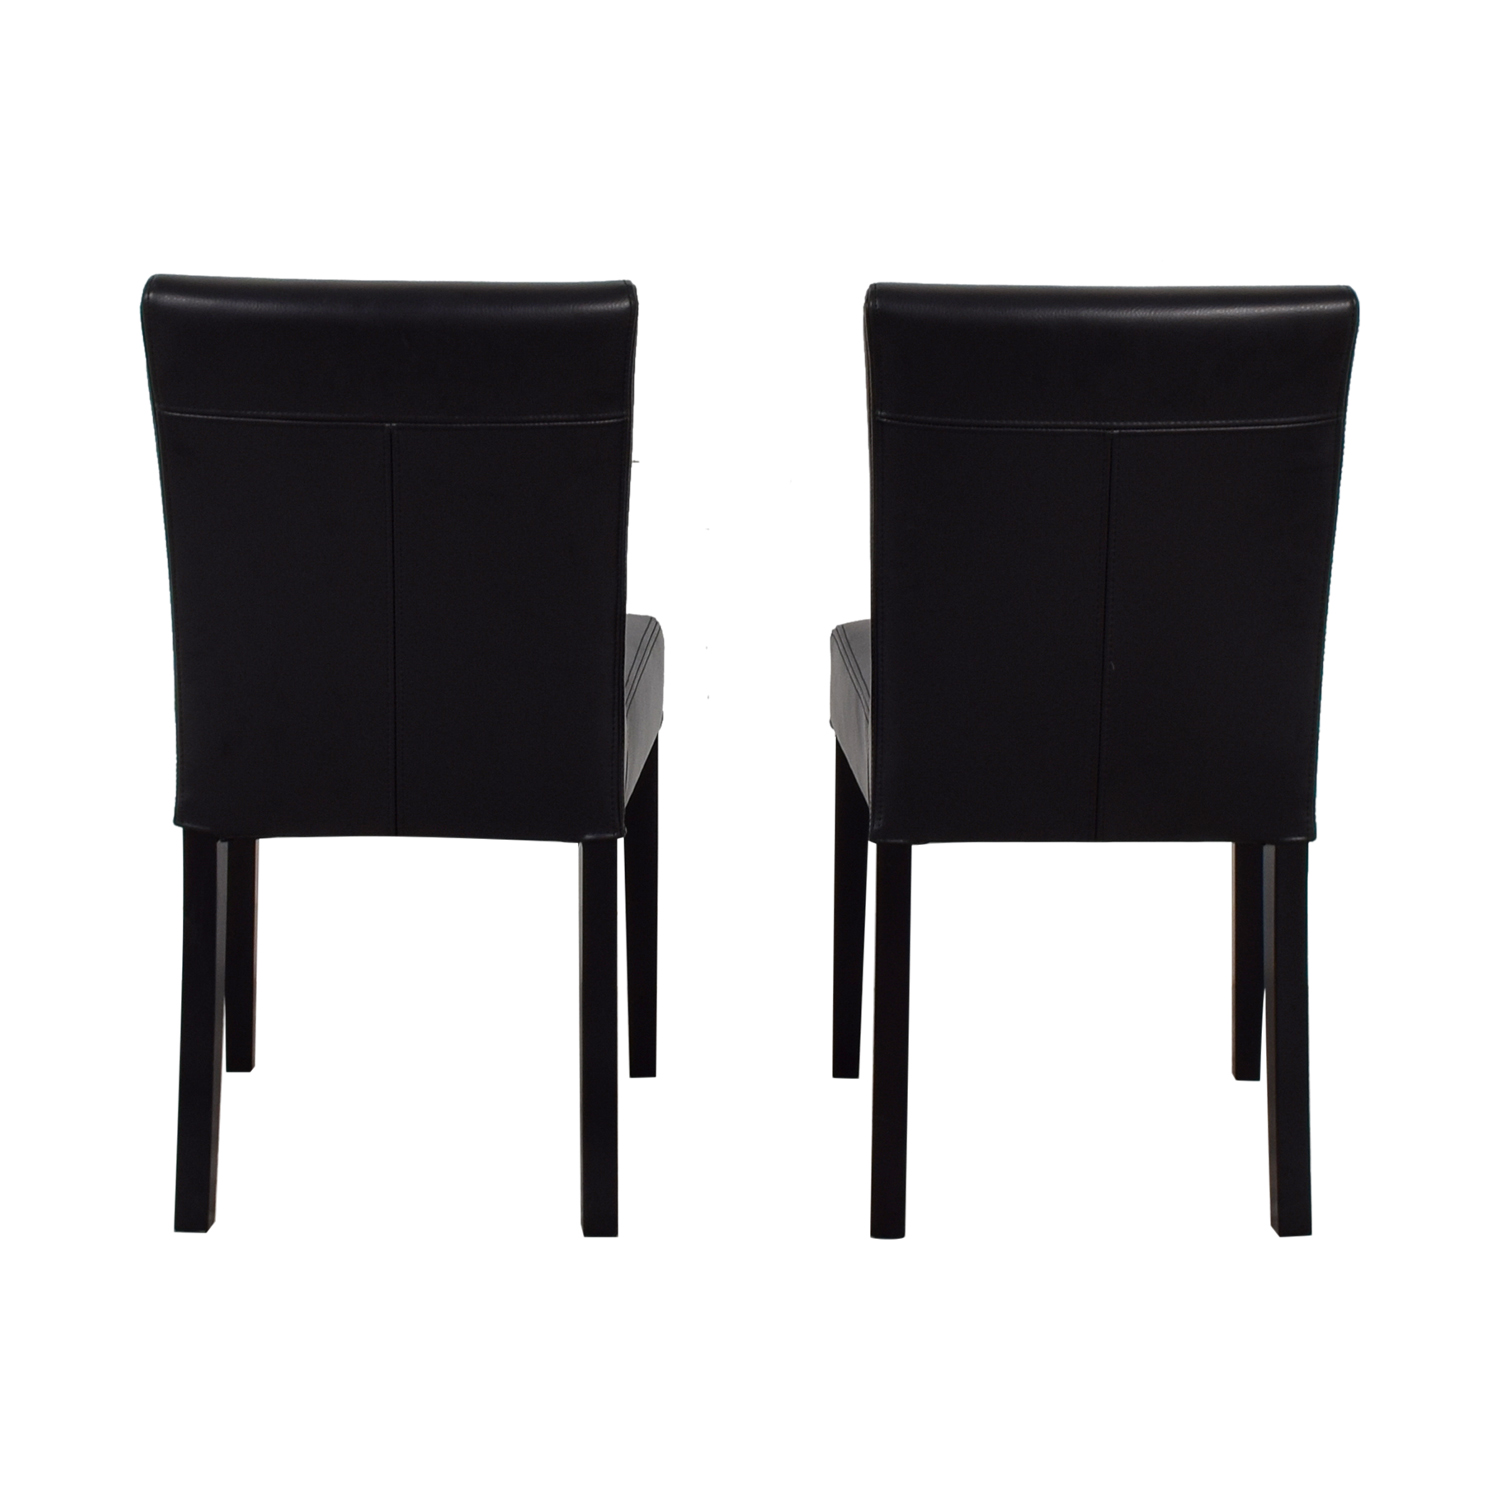 Crate & Barrel Crate & Barrel Lowe Black Leather Dining Chairs nj